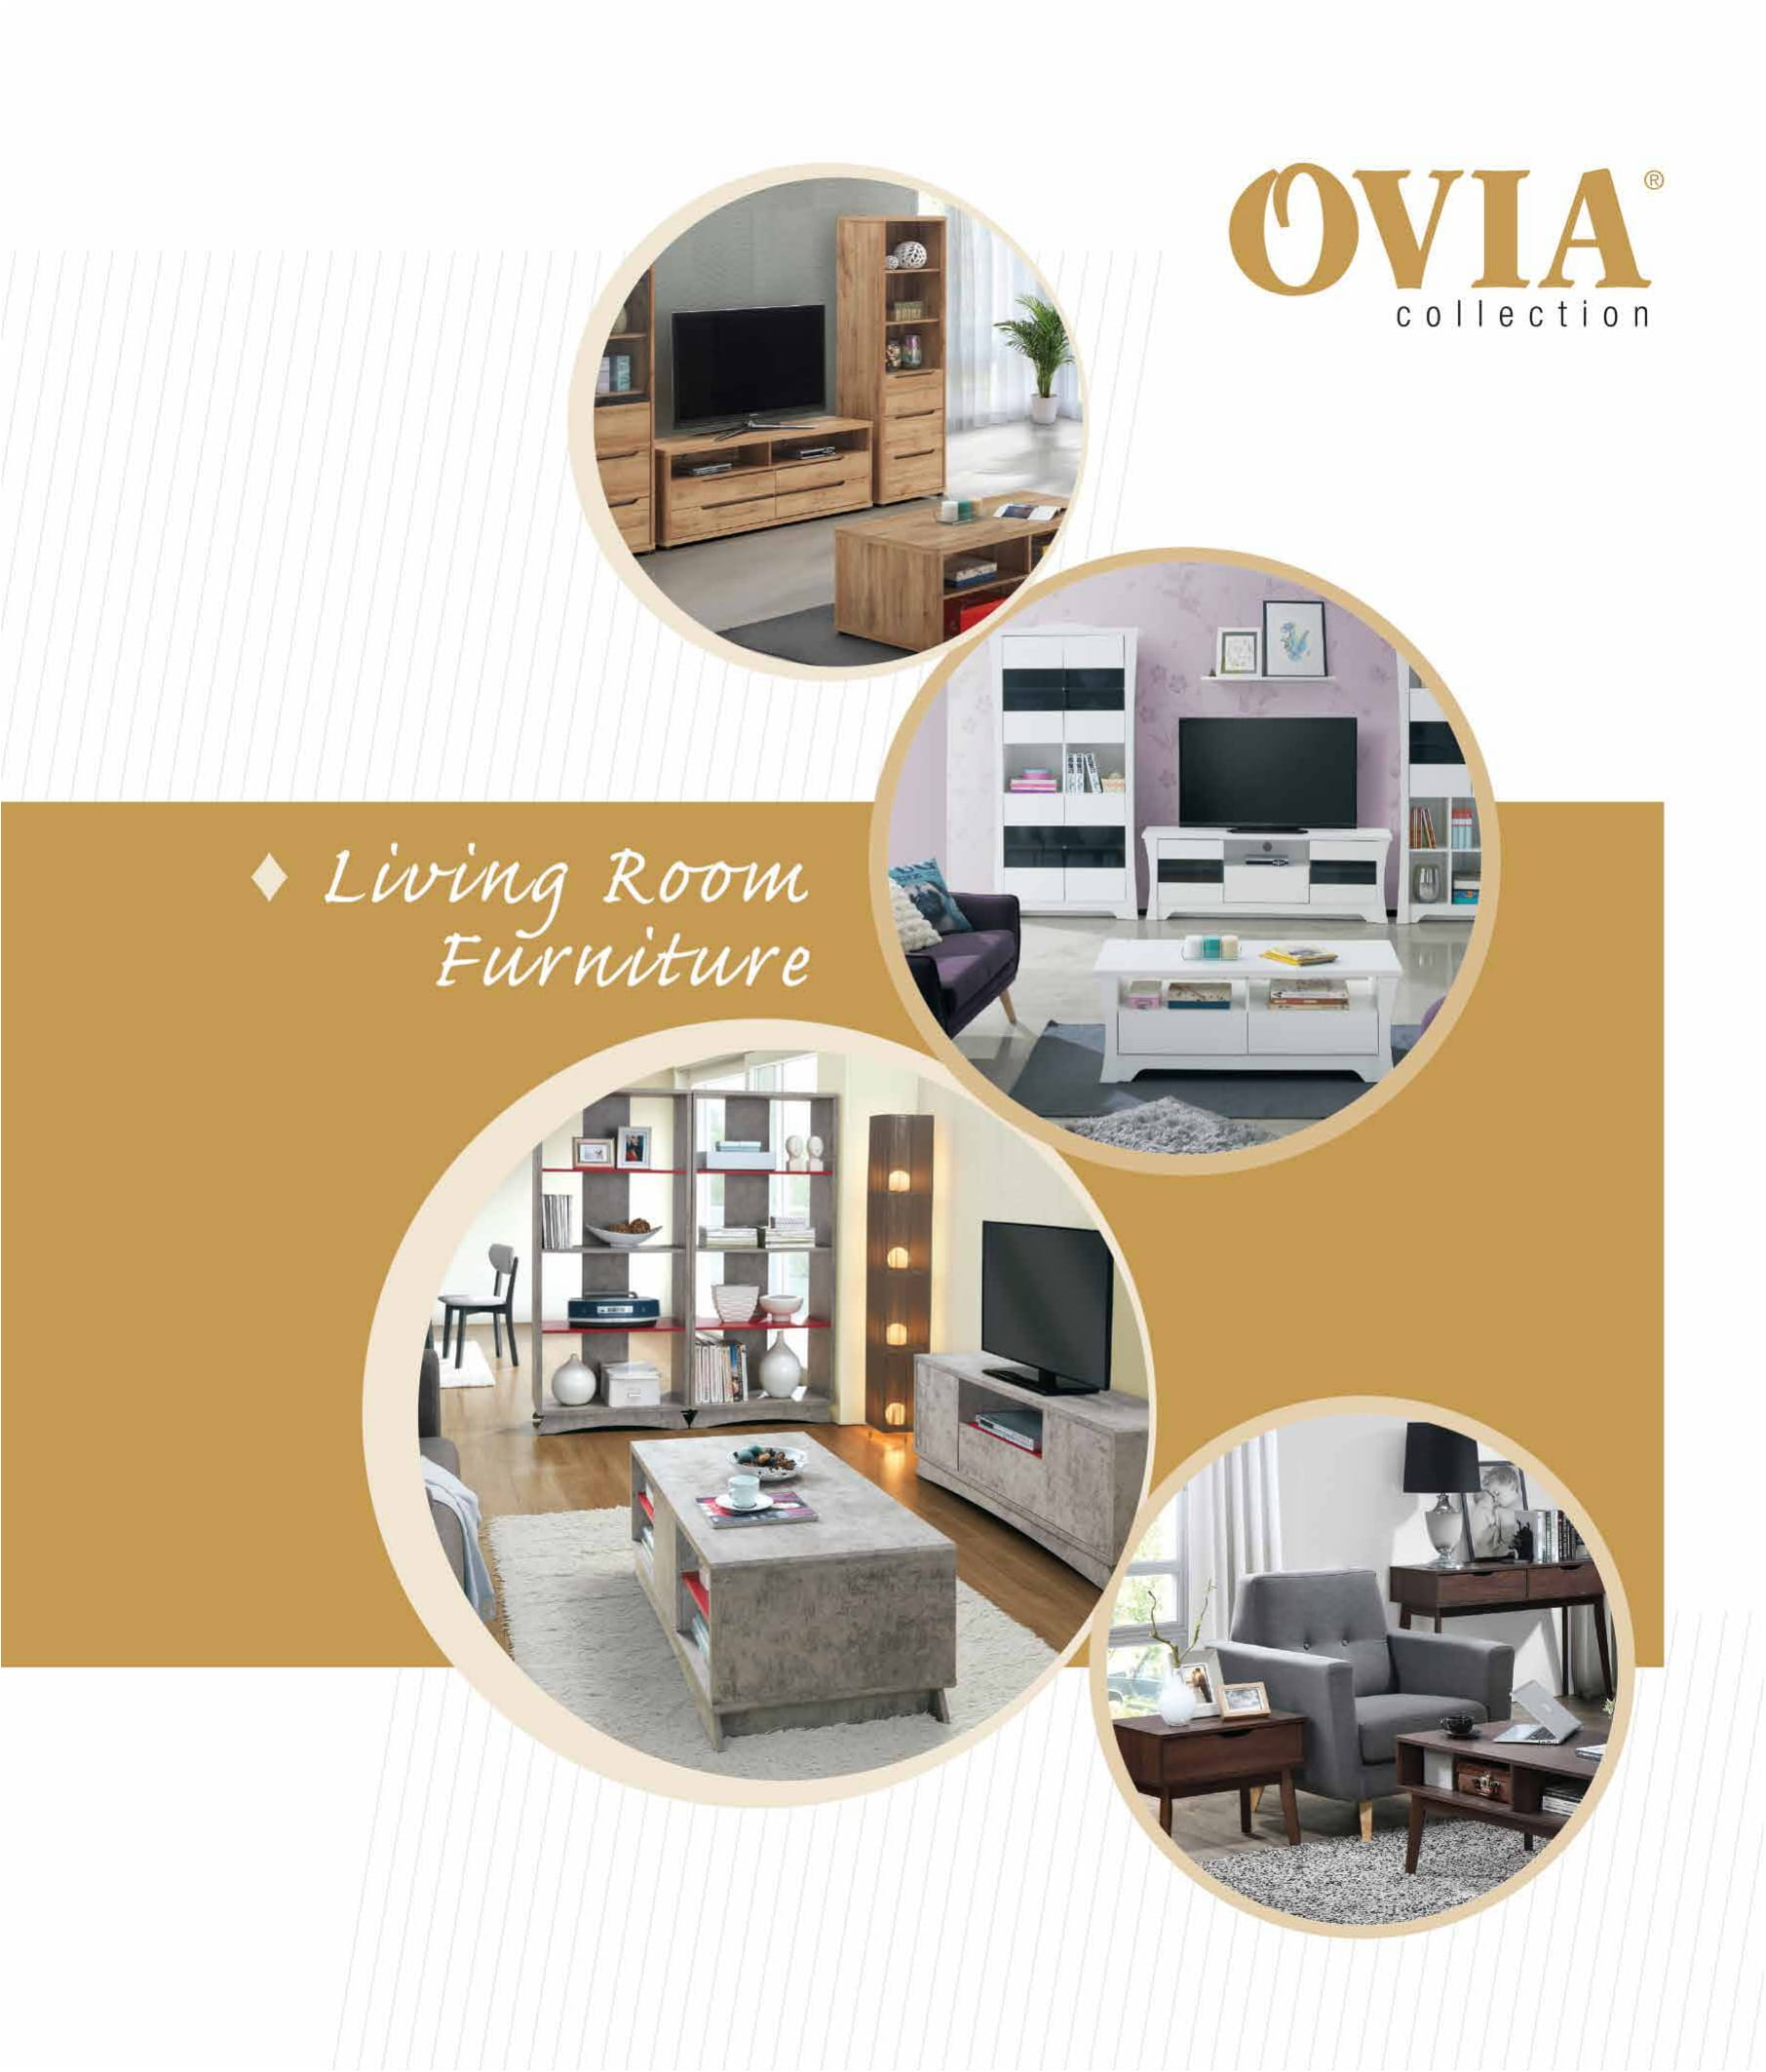 Ovia Collection 4-027